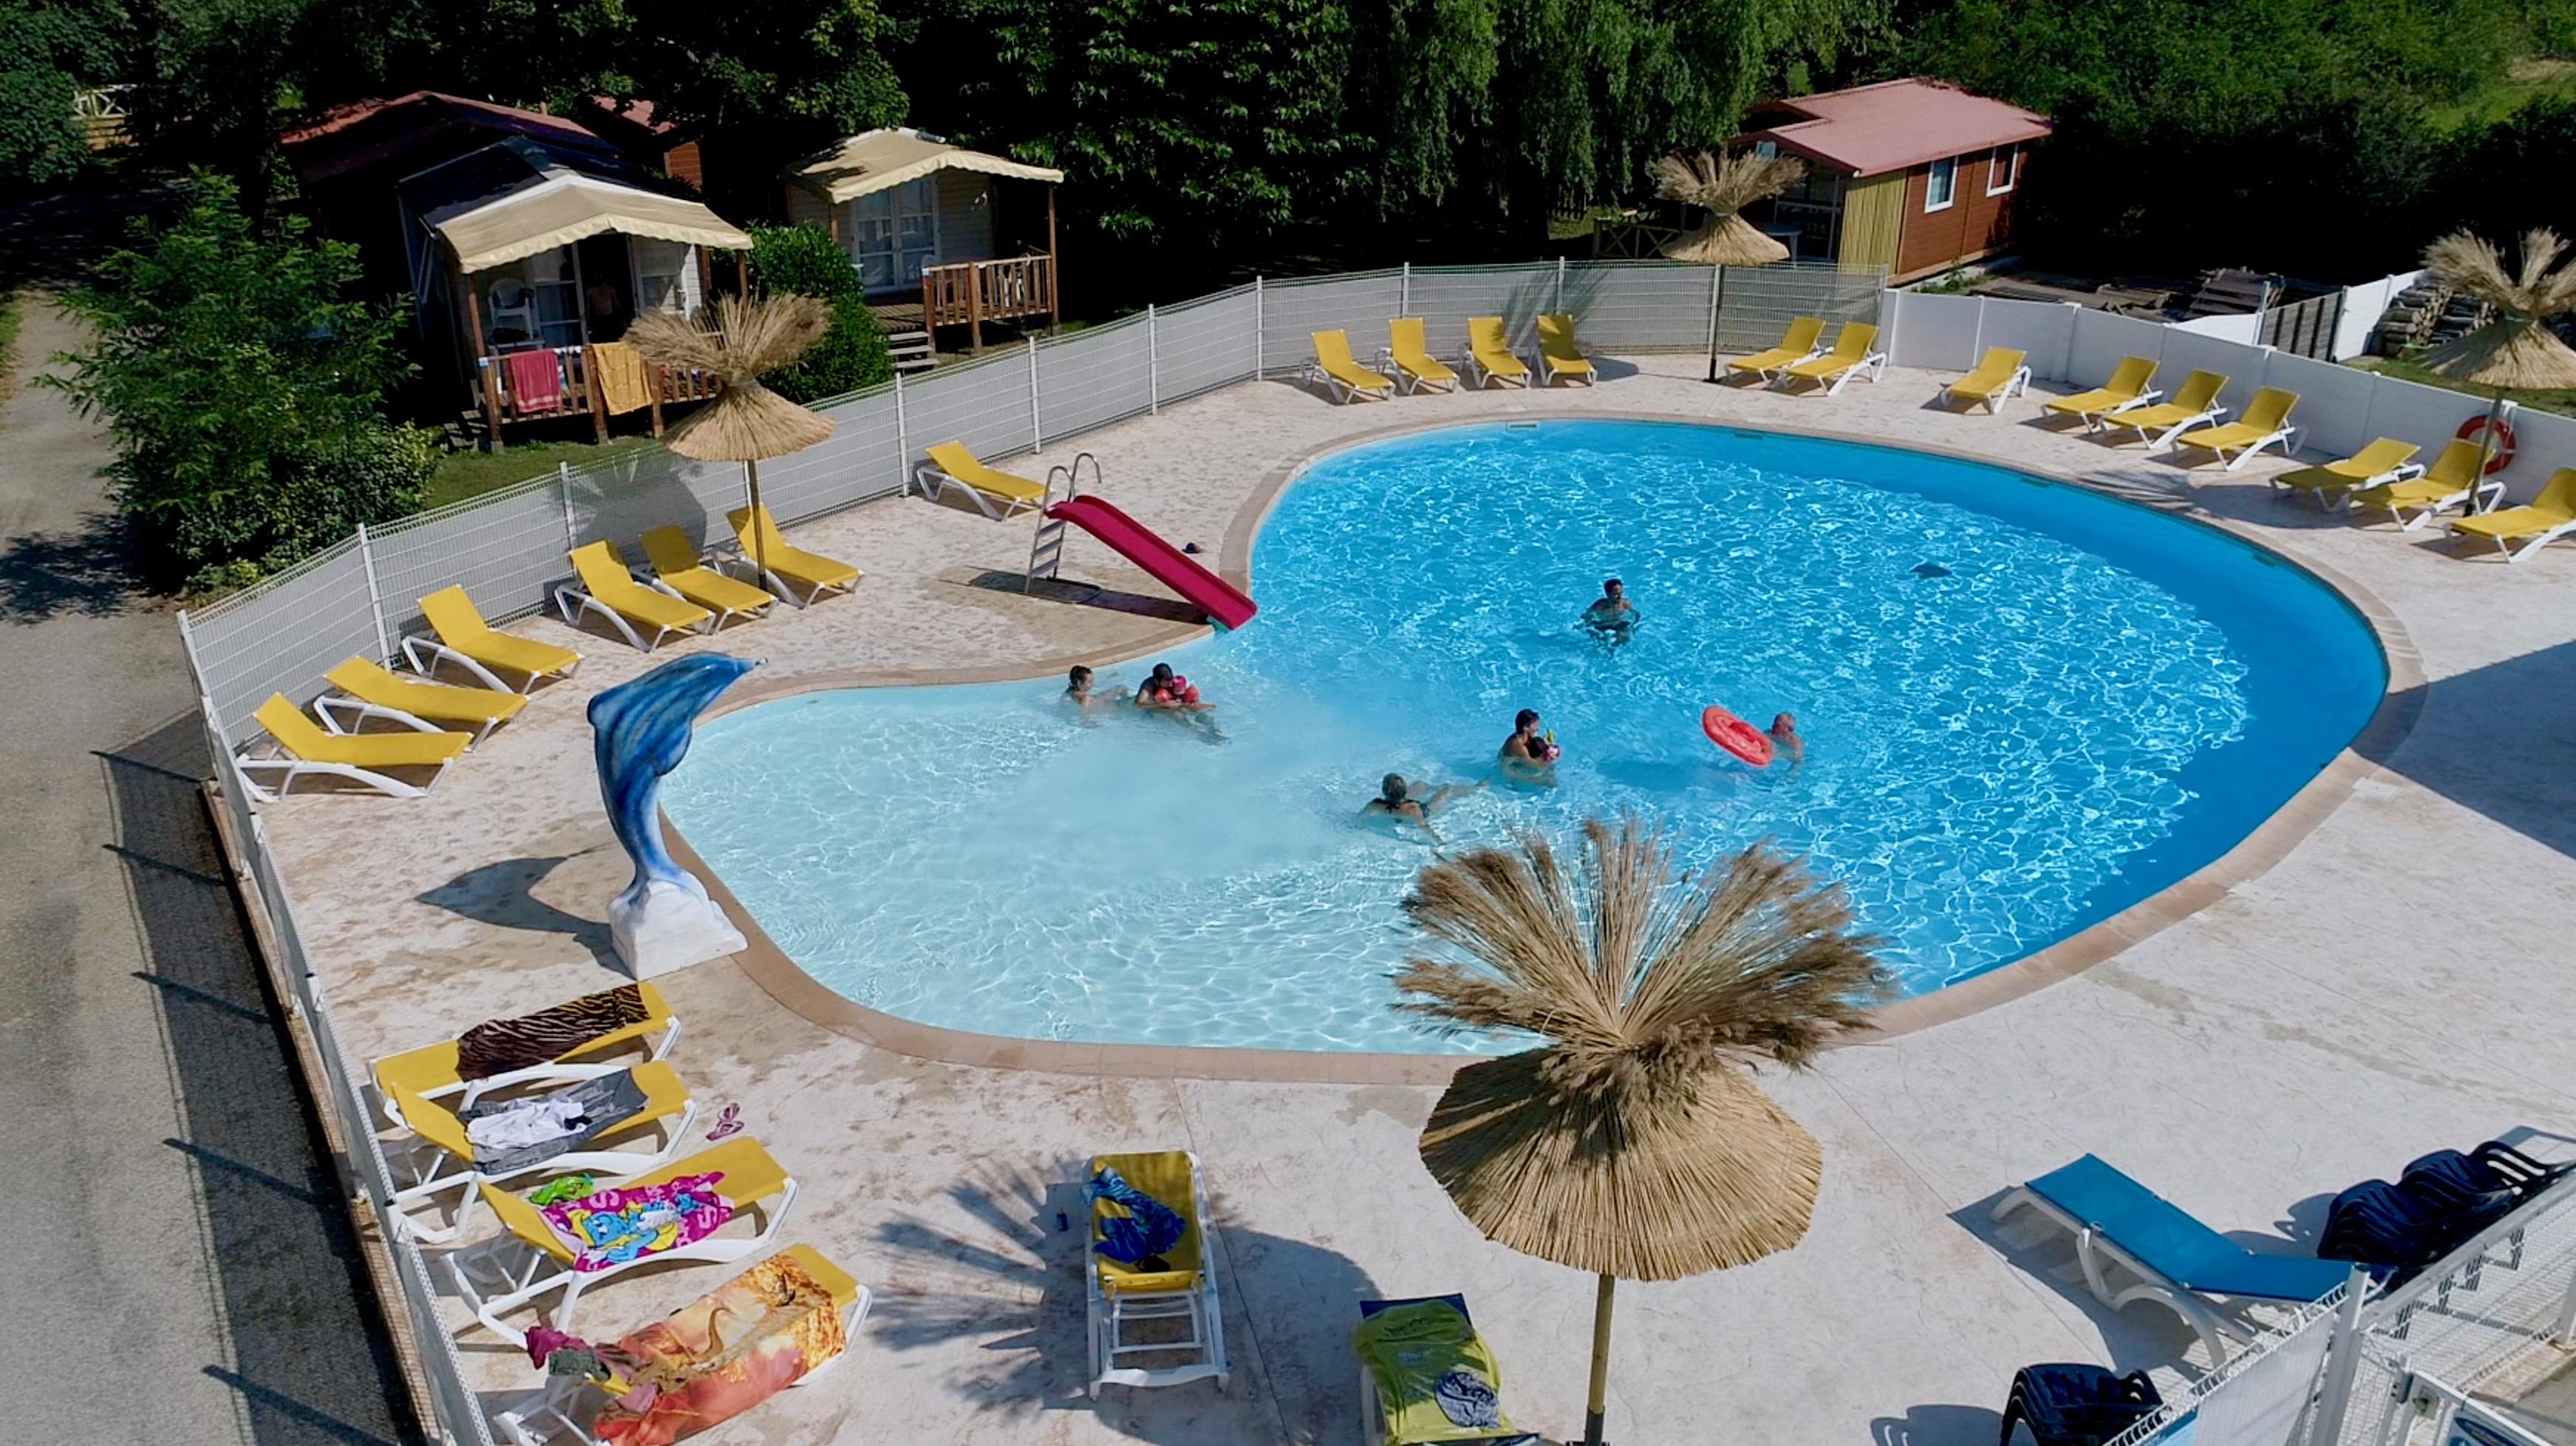 Establishment Camping Le Verger De Jastres - Saint-Didier-Sous-Aubenas